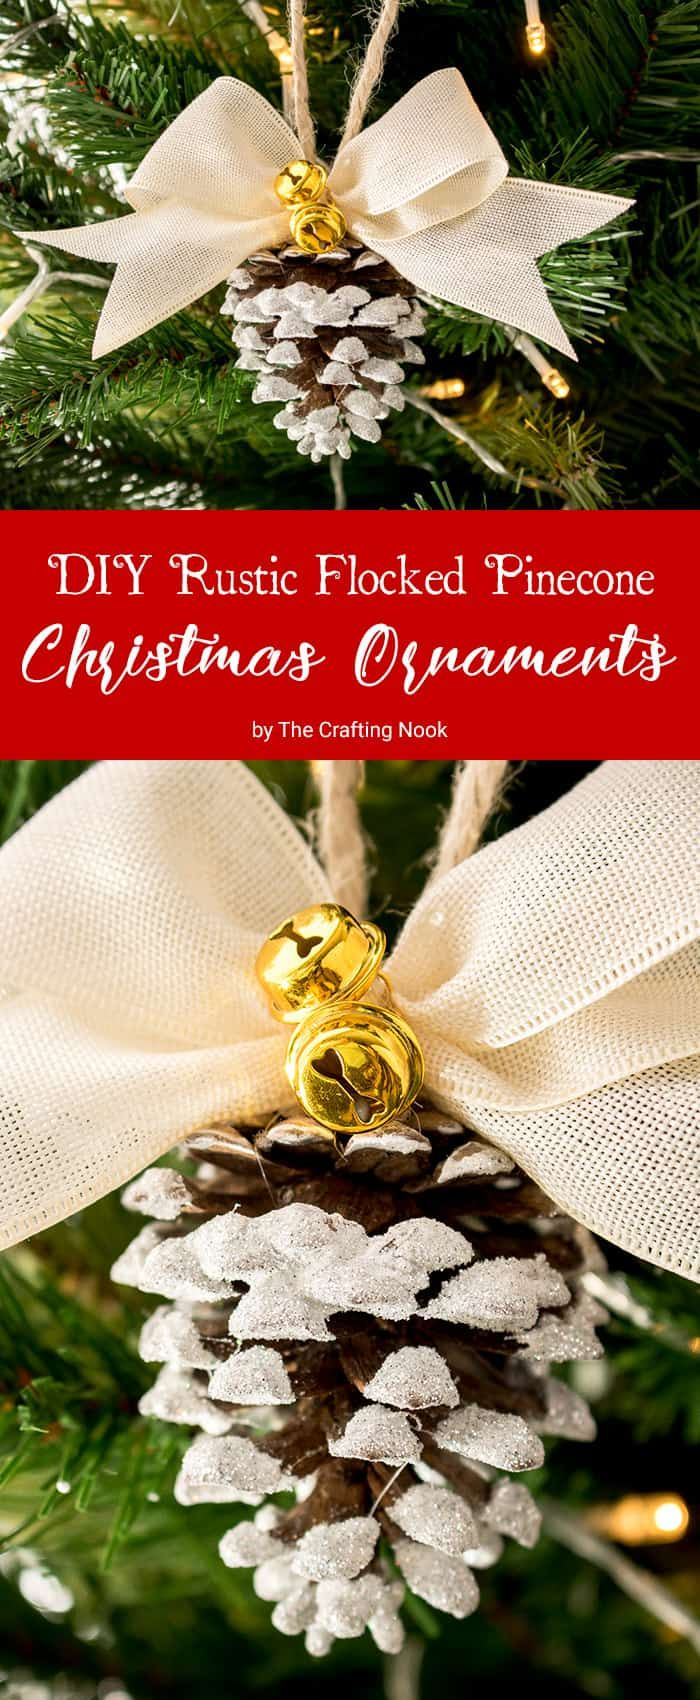 What Is Prettier Than A Rustic Pinecone Ornament Some Super Cute Rustic Flocked Pinecon Diy Christmas Ornaments Christmas Ornaments Rustic Christmas Ornaments